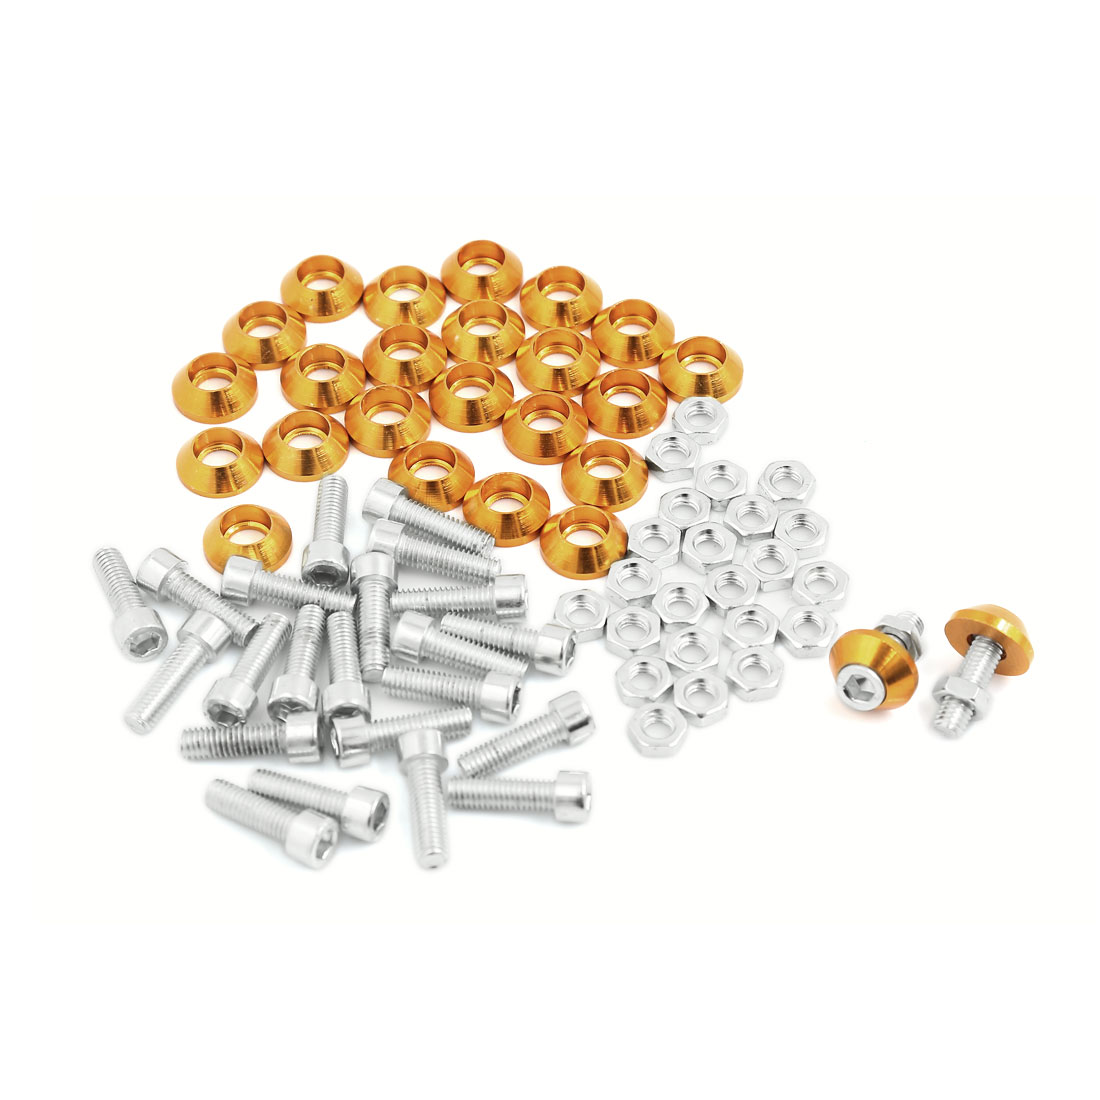 25pcs Gold Tone Cone Shaped License Plate Frame Screws Nuts M6 for Motocycle Car